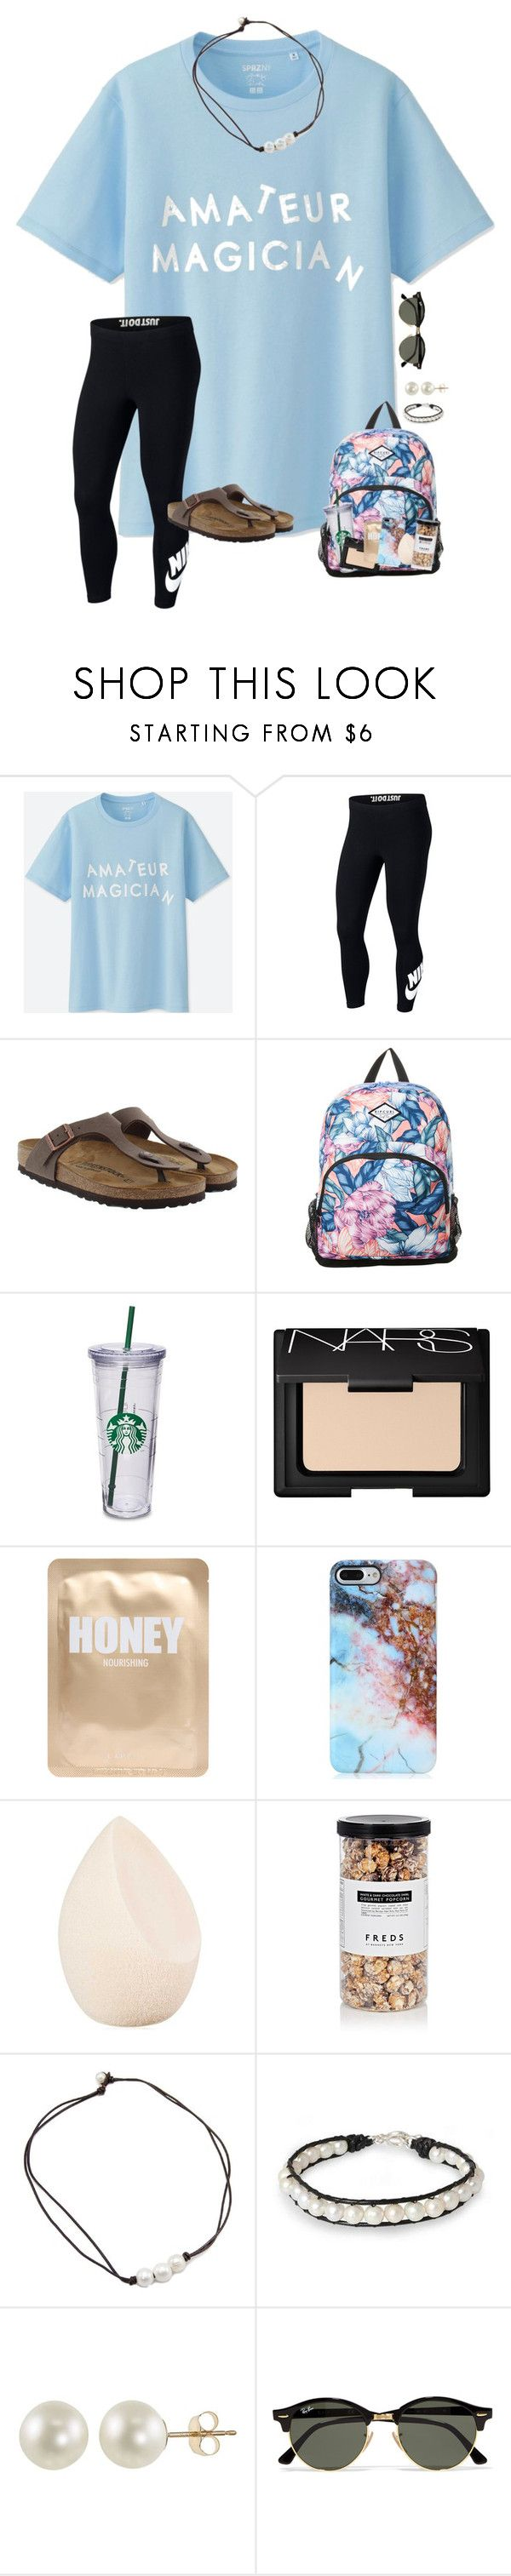 """""""~pm me:) i'm bored~"""" by taylortinsley ❤ liked on Polyvore featuring Uniqlo, NIKE, Birkenstock, Rip Curl, NARS Cosmetics, Lapcos, Christian Dior, FREDS at Barneys New York, NOVICA and PearLustre by Imperial"""